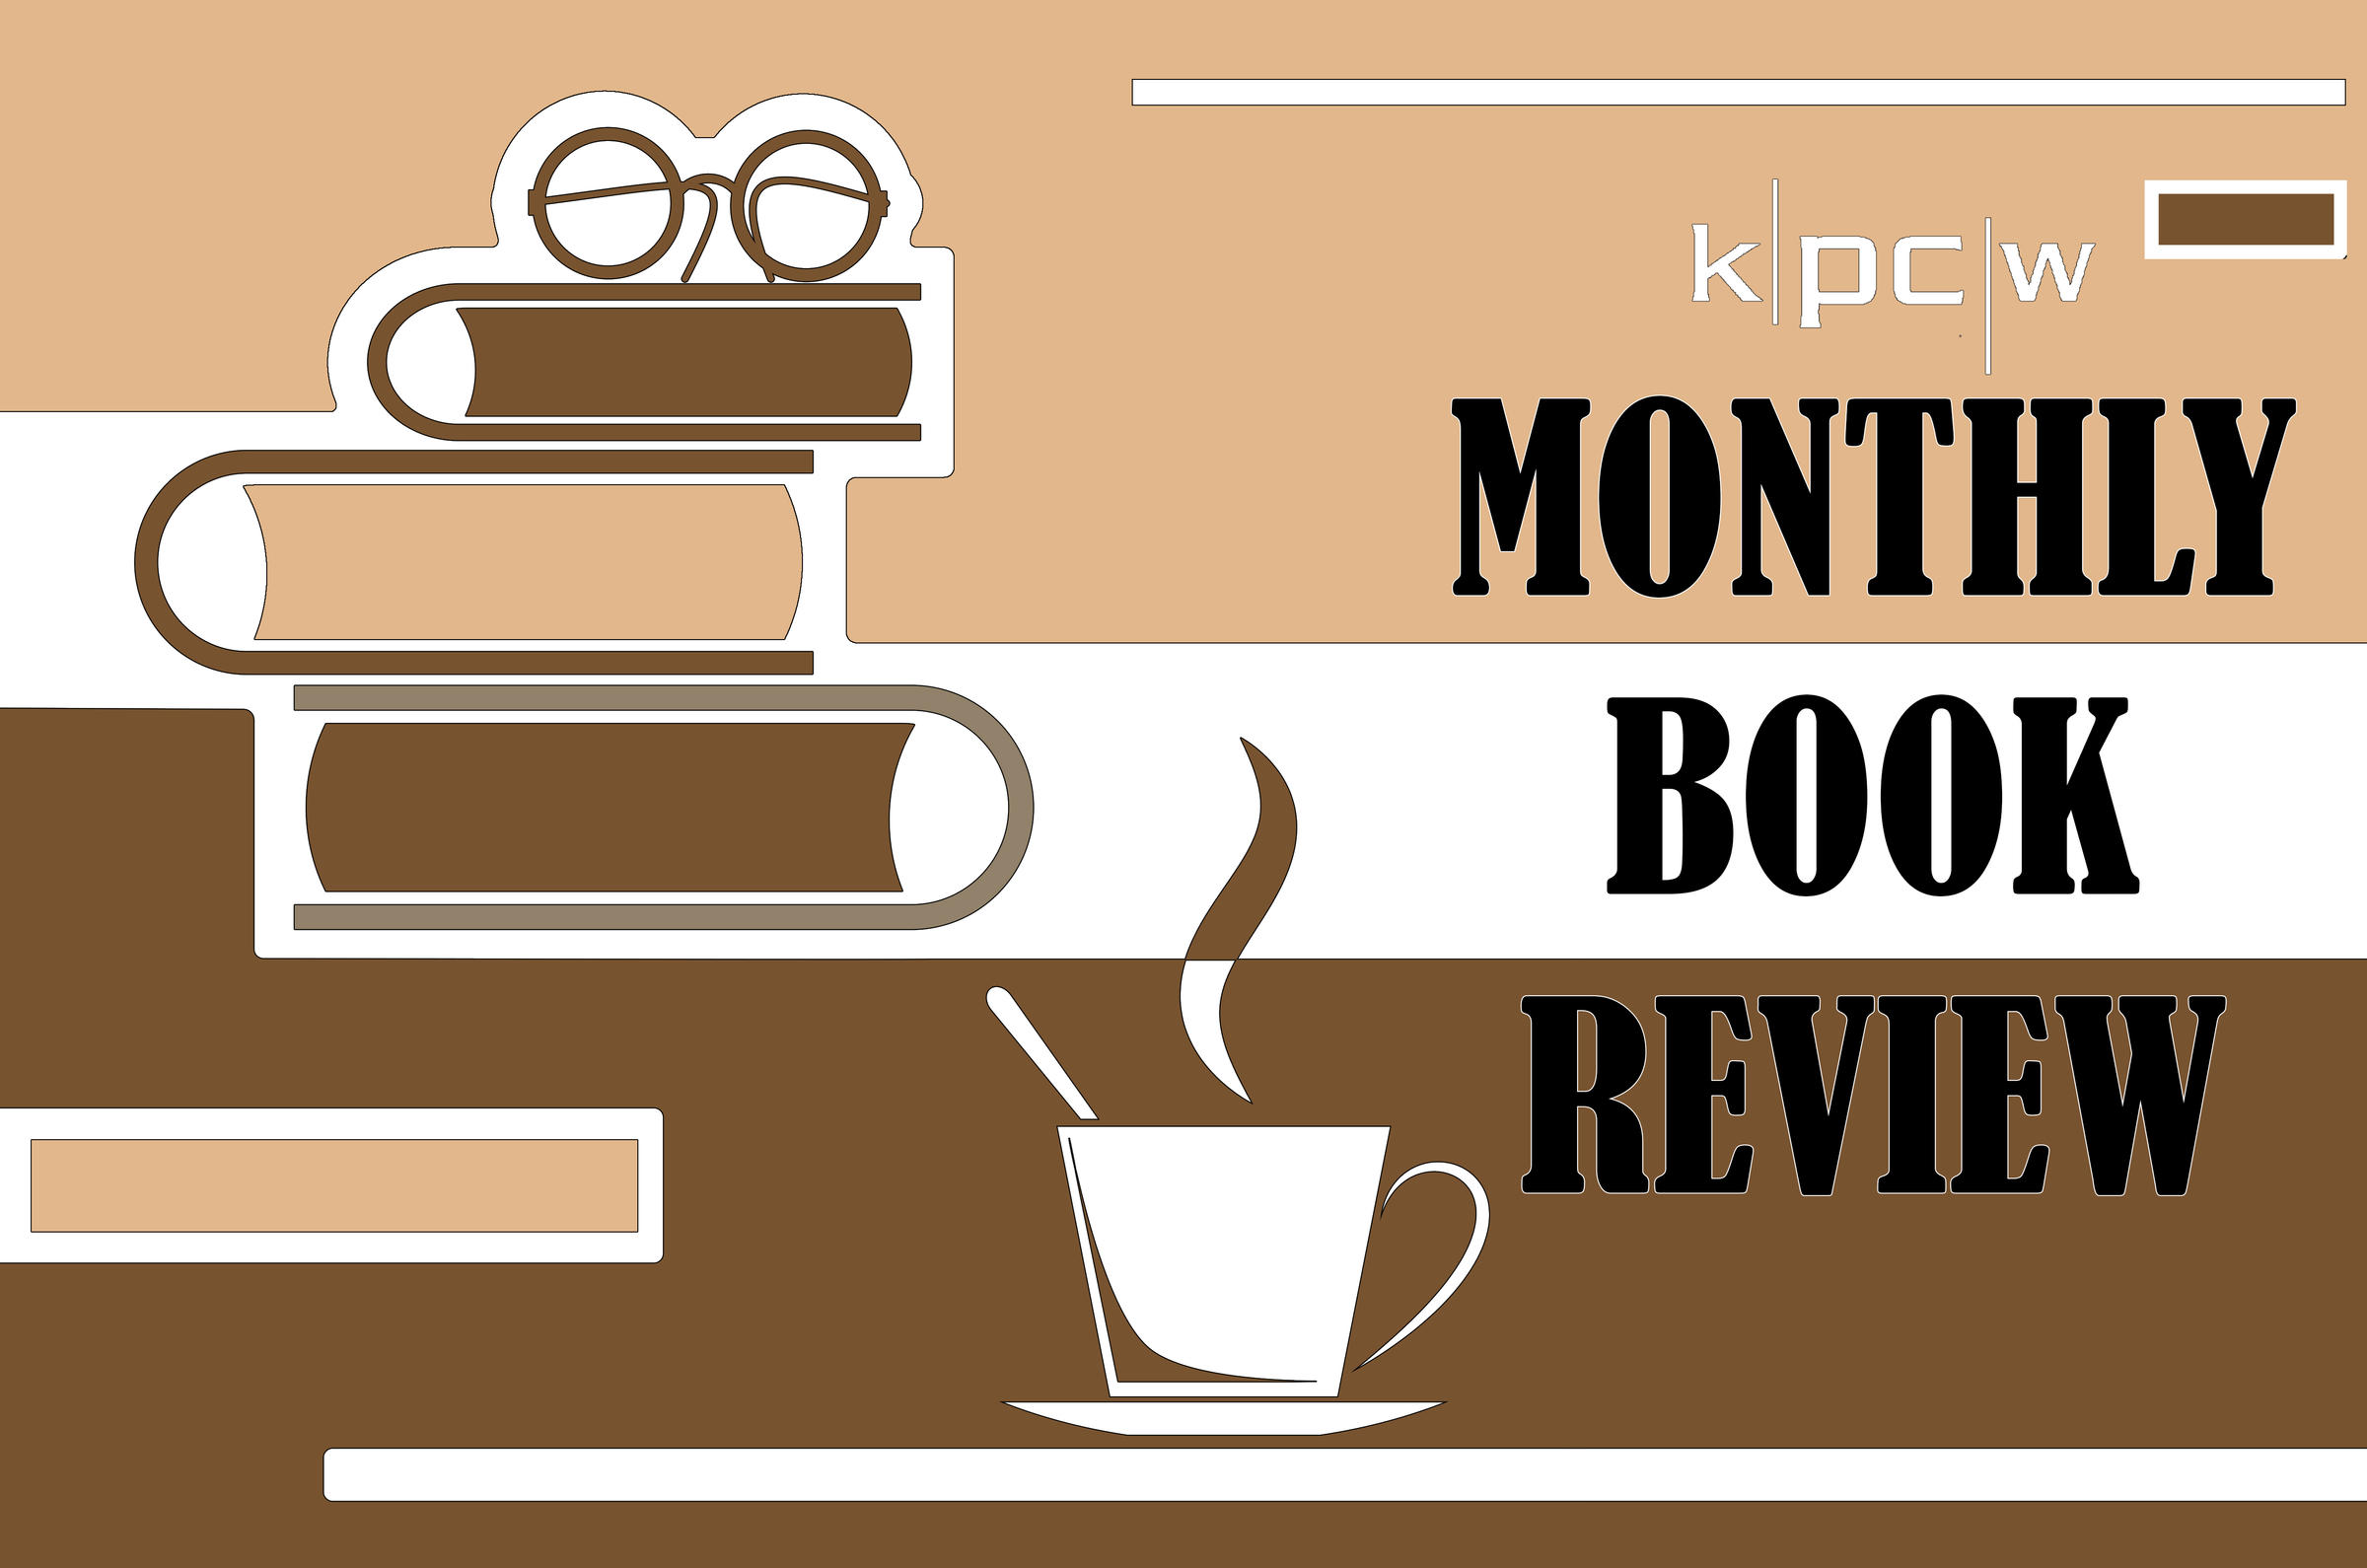 book summary and review going public Gone with the wind is a best-selling, controversial, civil war novel by margaret mitchel, later immortalized in the classic movie.